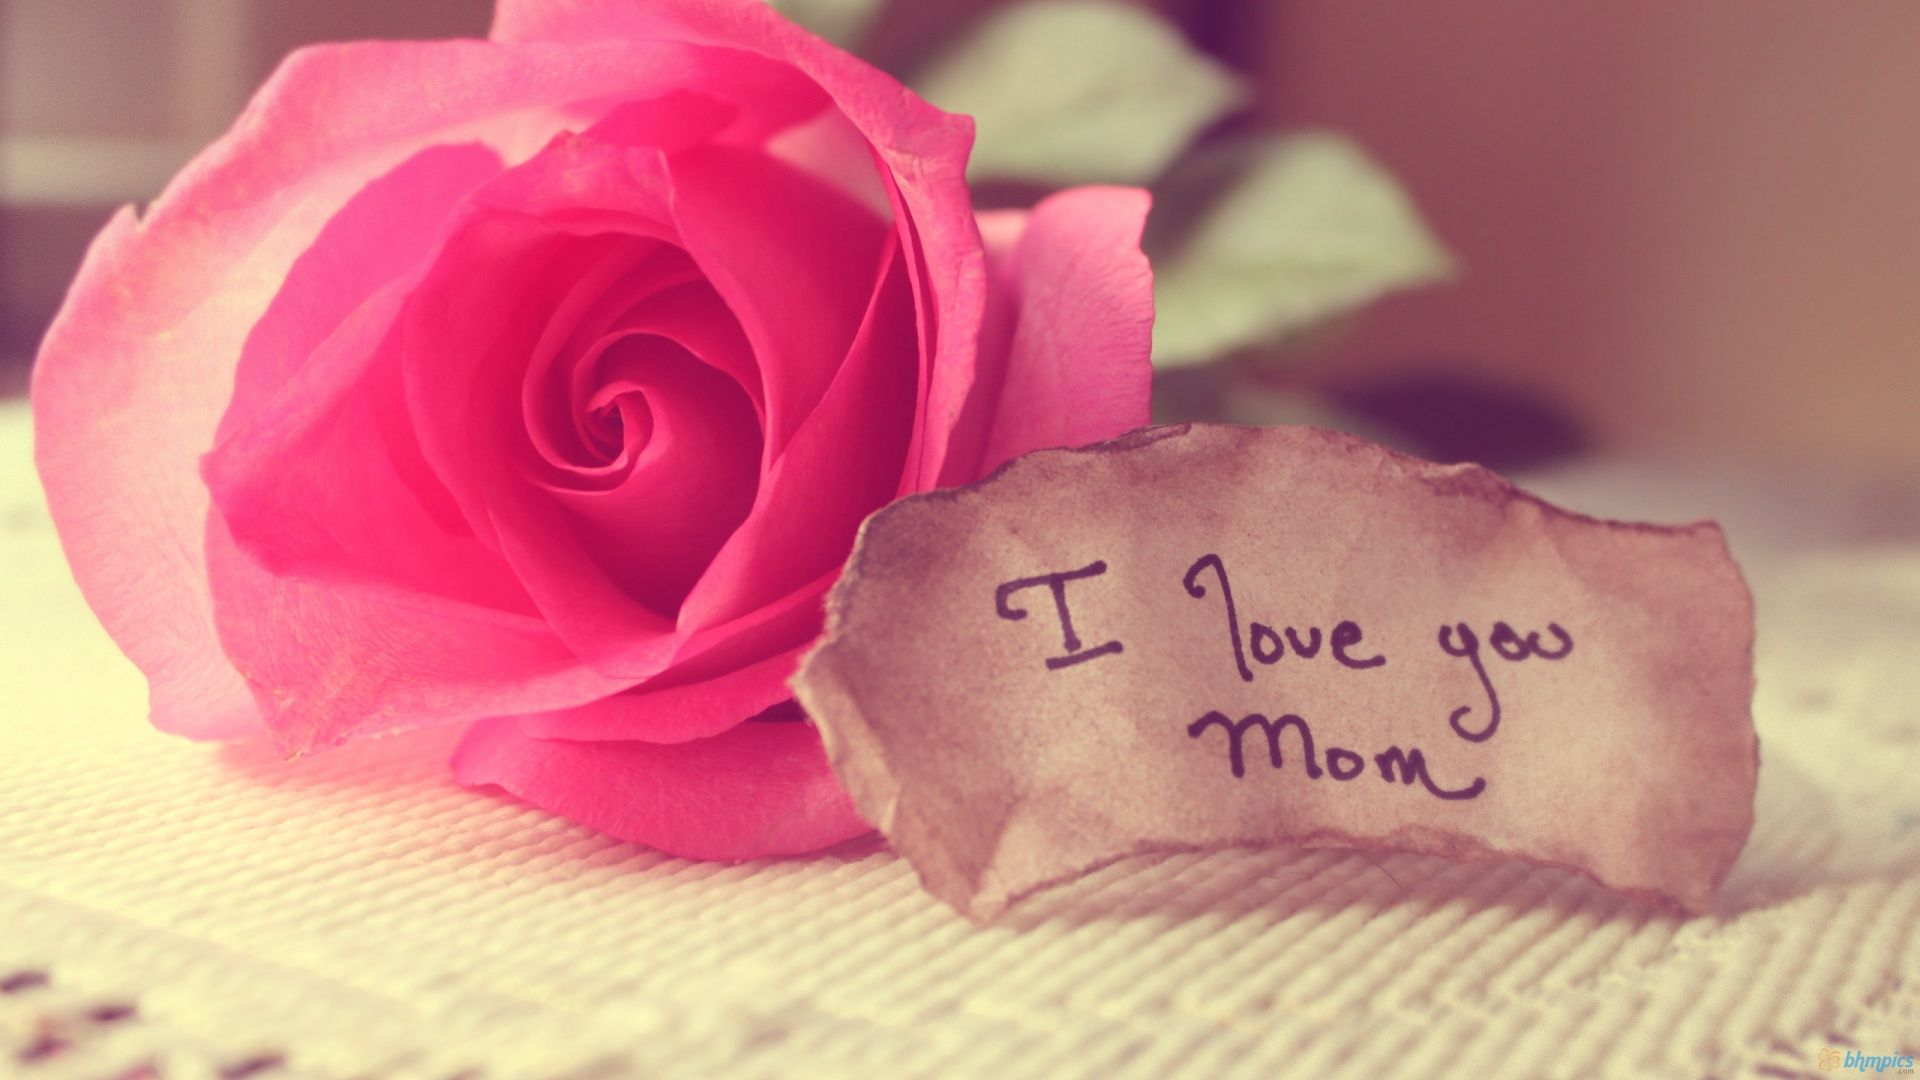 Mother S Day I Love You Mom Exclusive Hd Wallpapers 3122 Happy